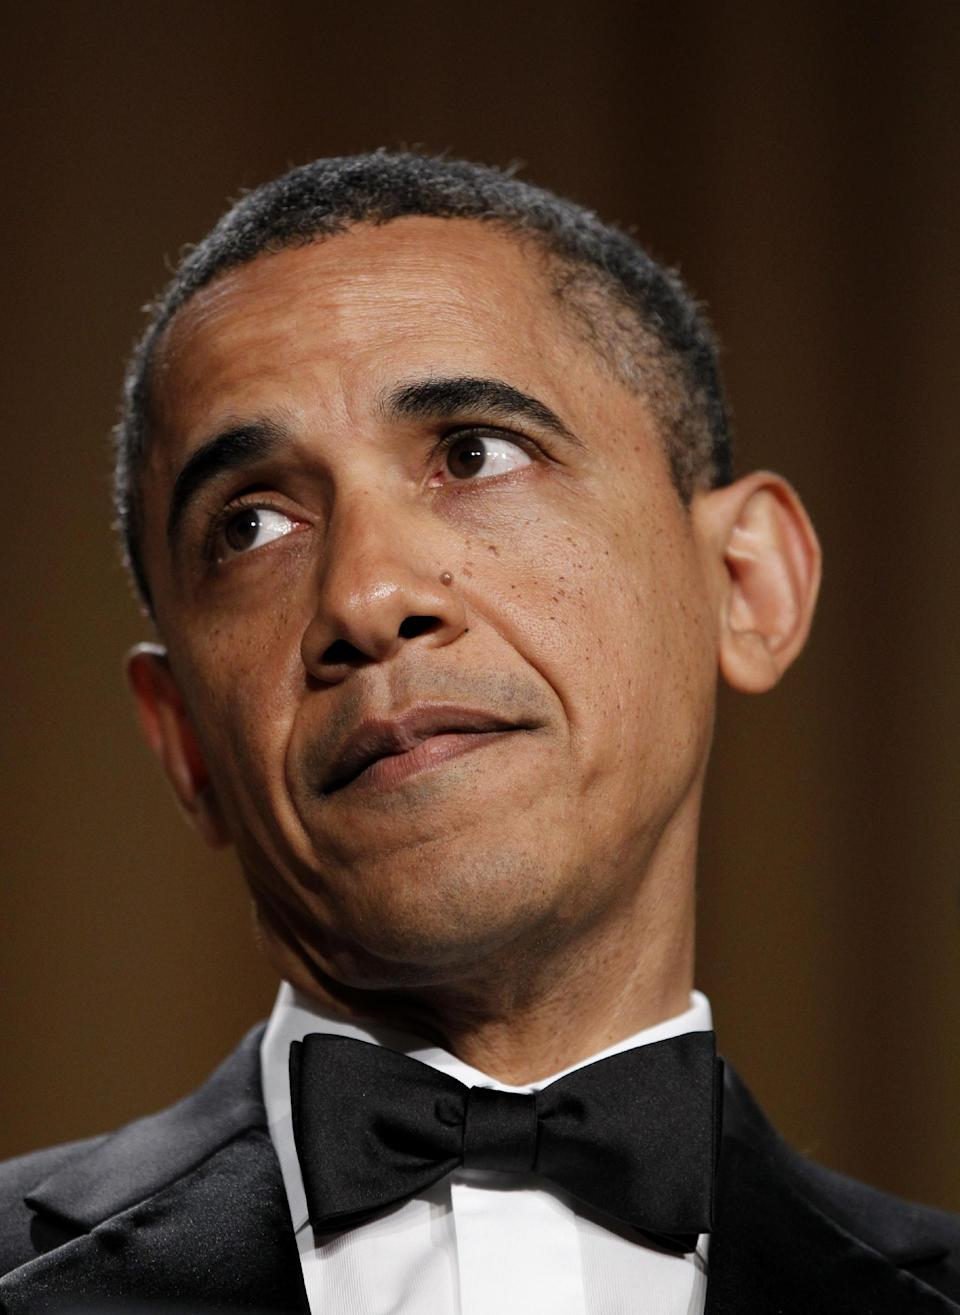 President Barack Obama attends the White House Correspondents' Association Dinner, Saturday, April 28, 2012 in Washington. (AP Photo/Haraz N. Ghanbari)